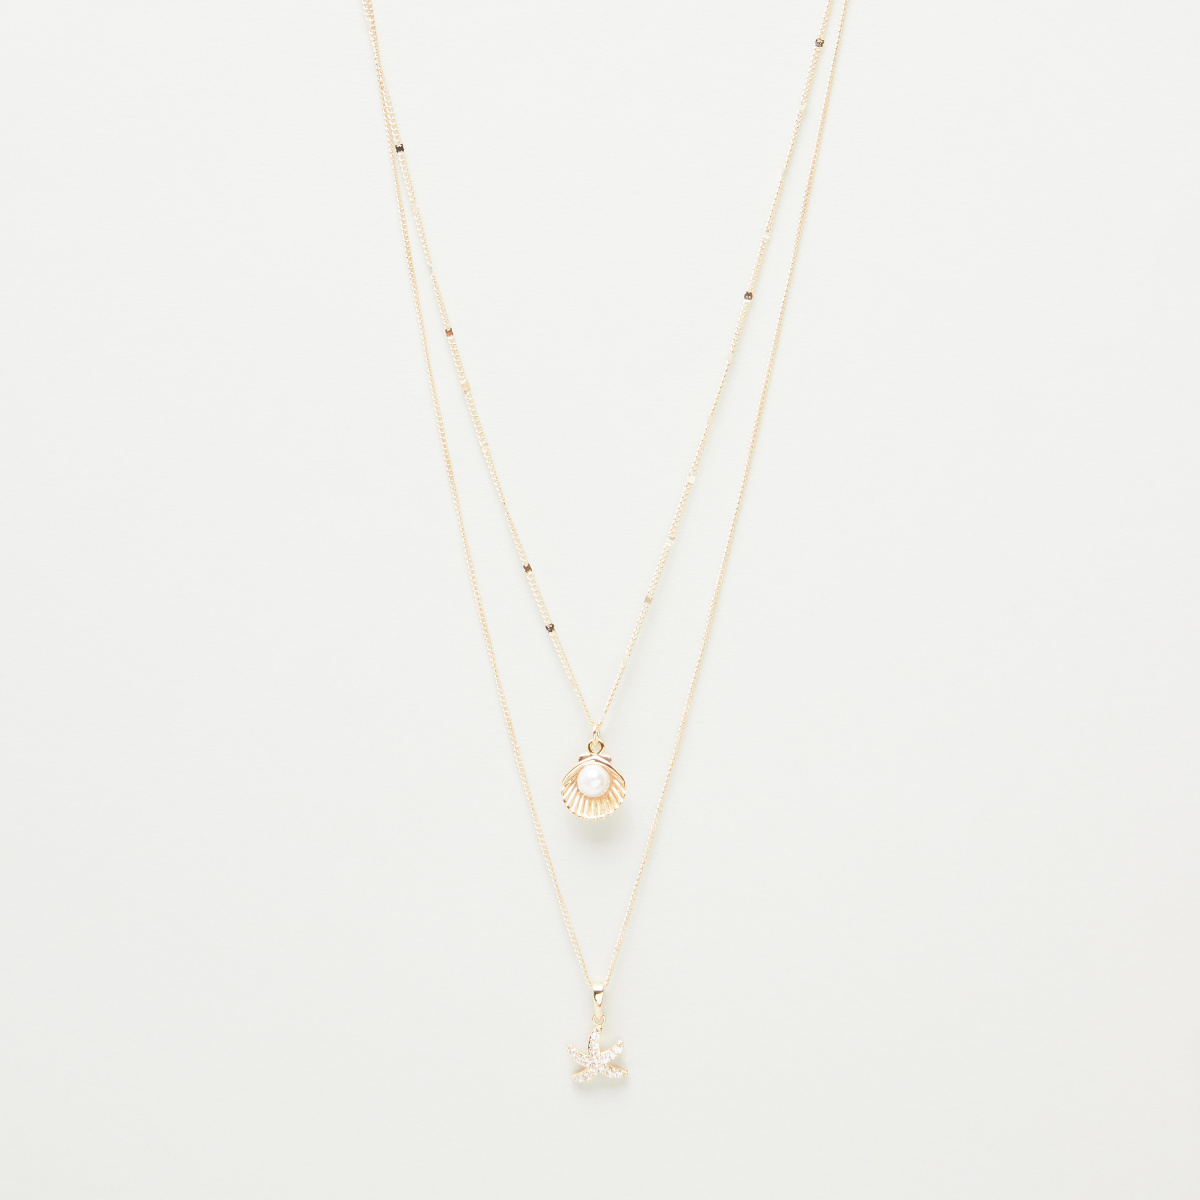 Gold Finish Double Chain Necklace with Starfish and Oyster Pendants